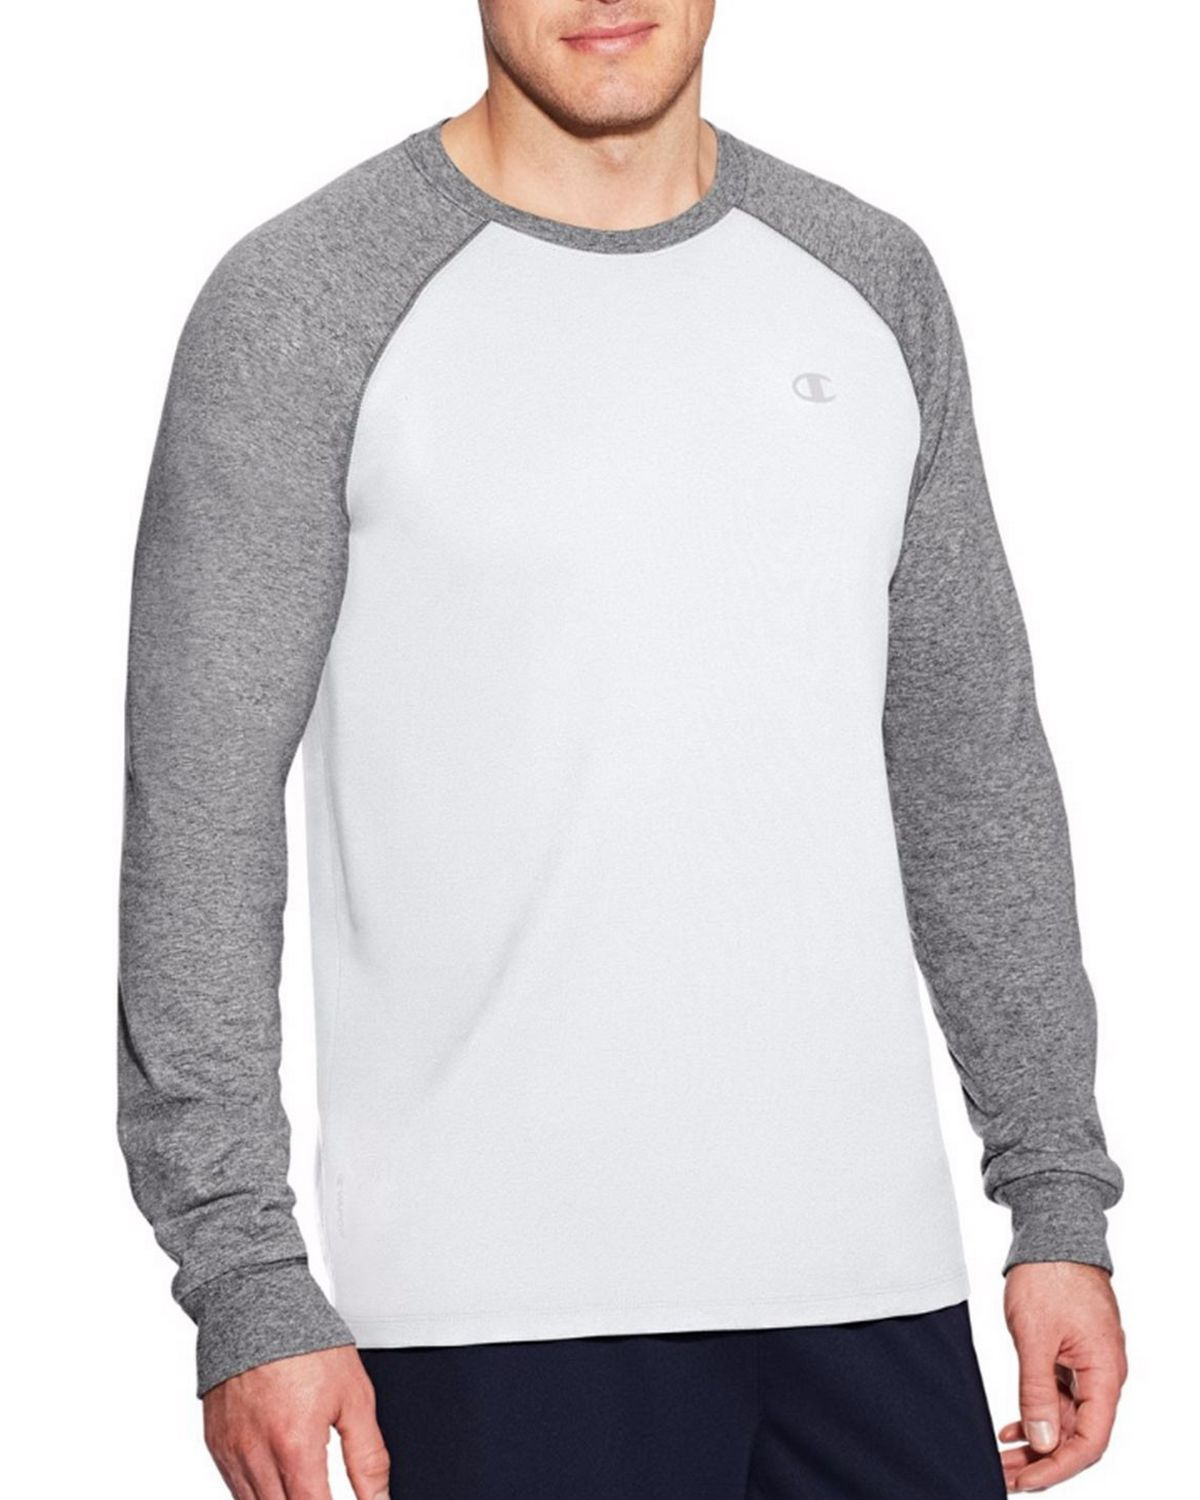 Champion T9937 Vapor Mens Cotton Tee - White/Oxford Grey - L T9937